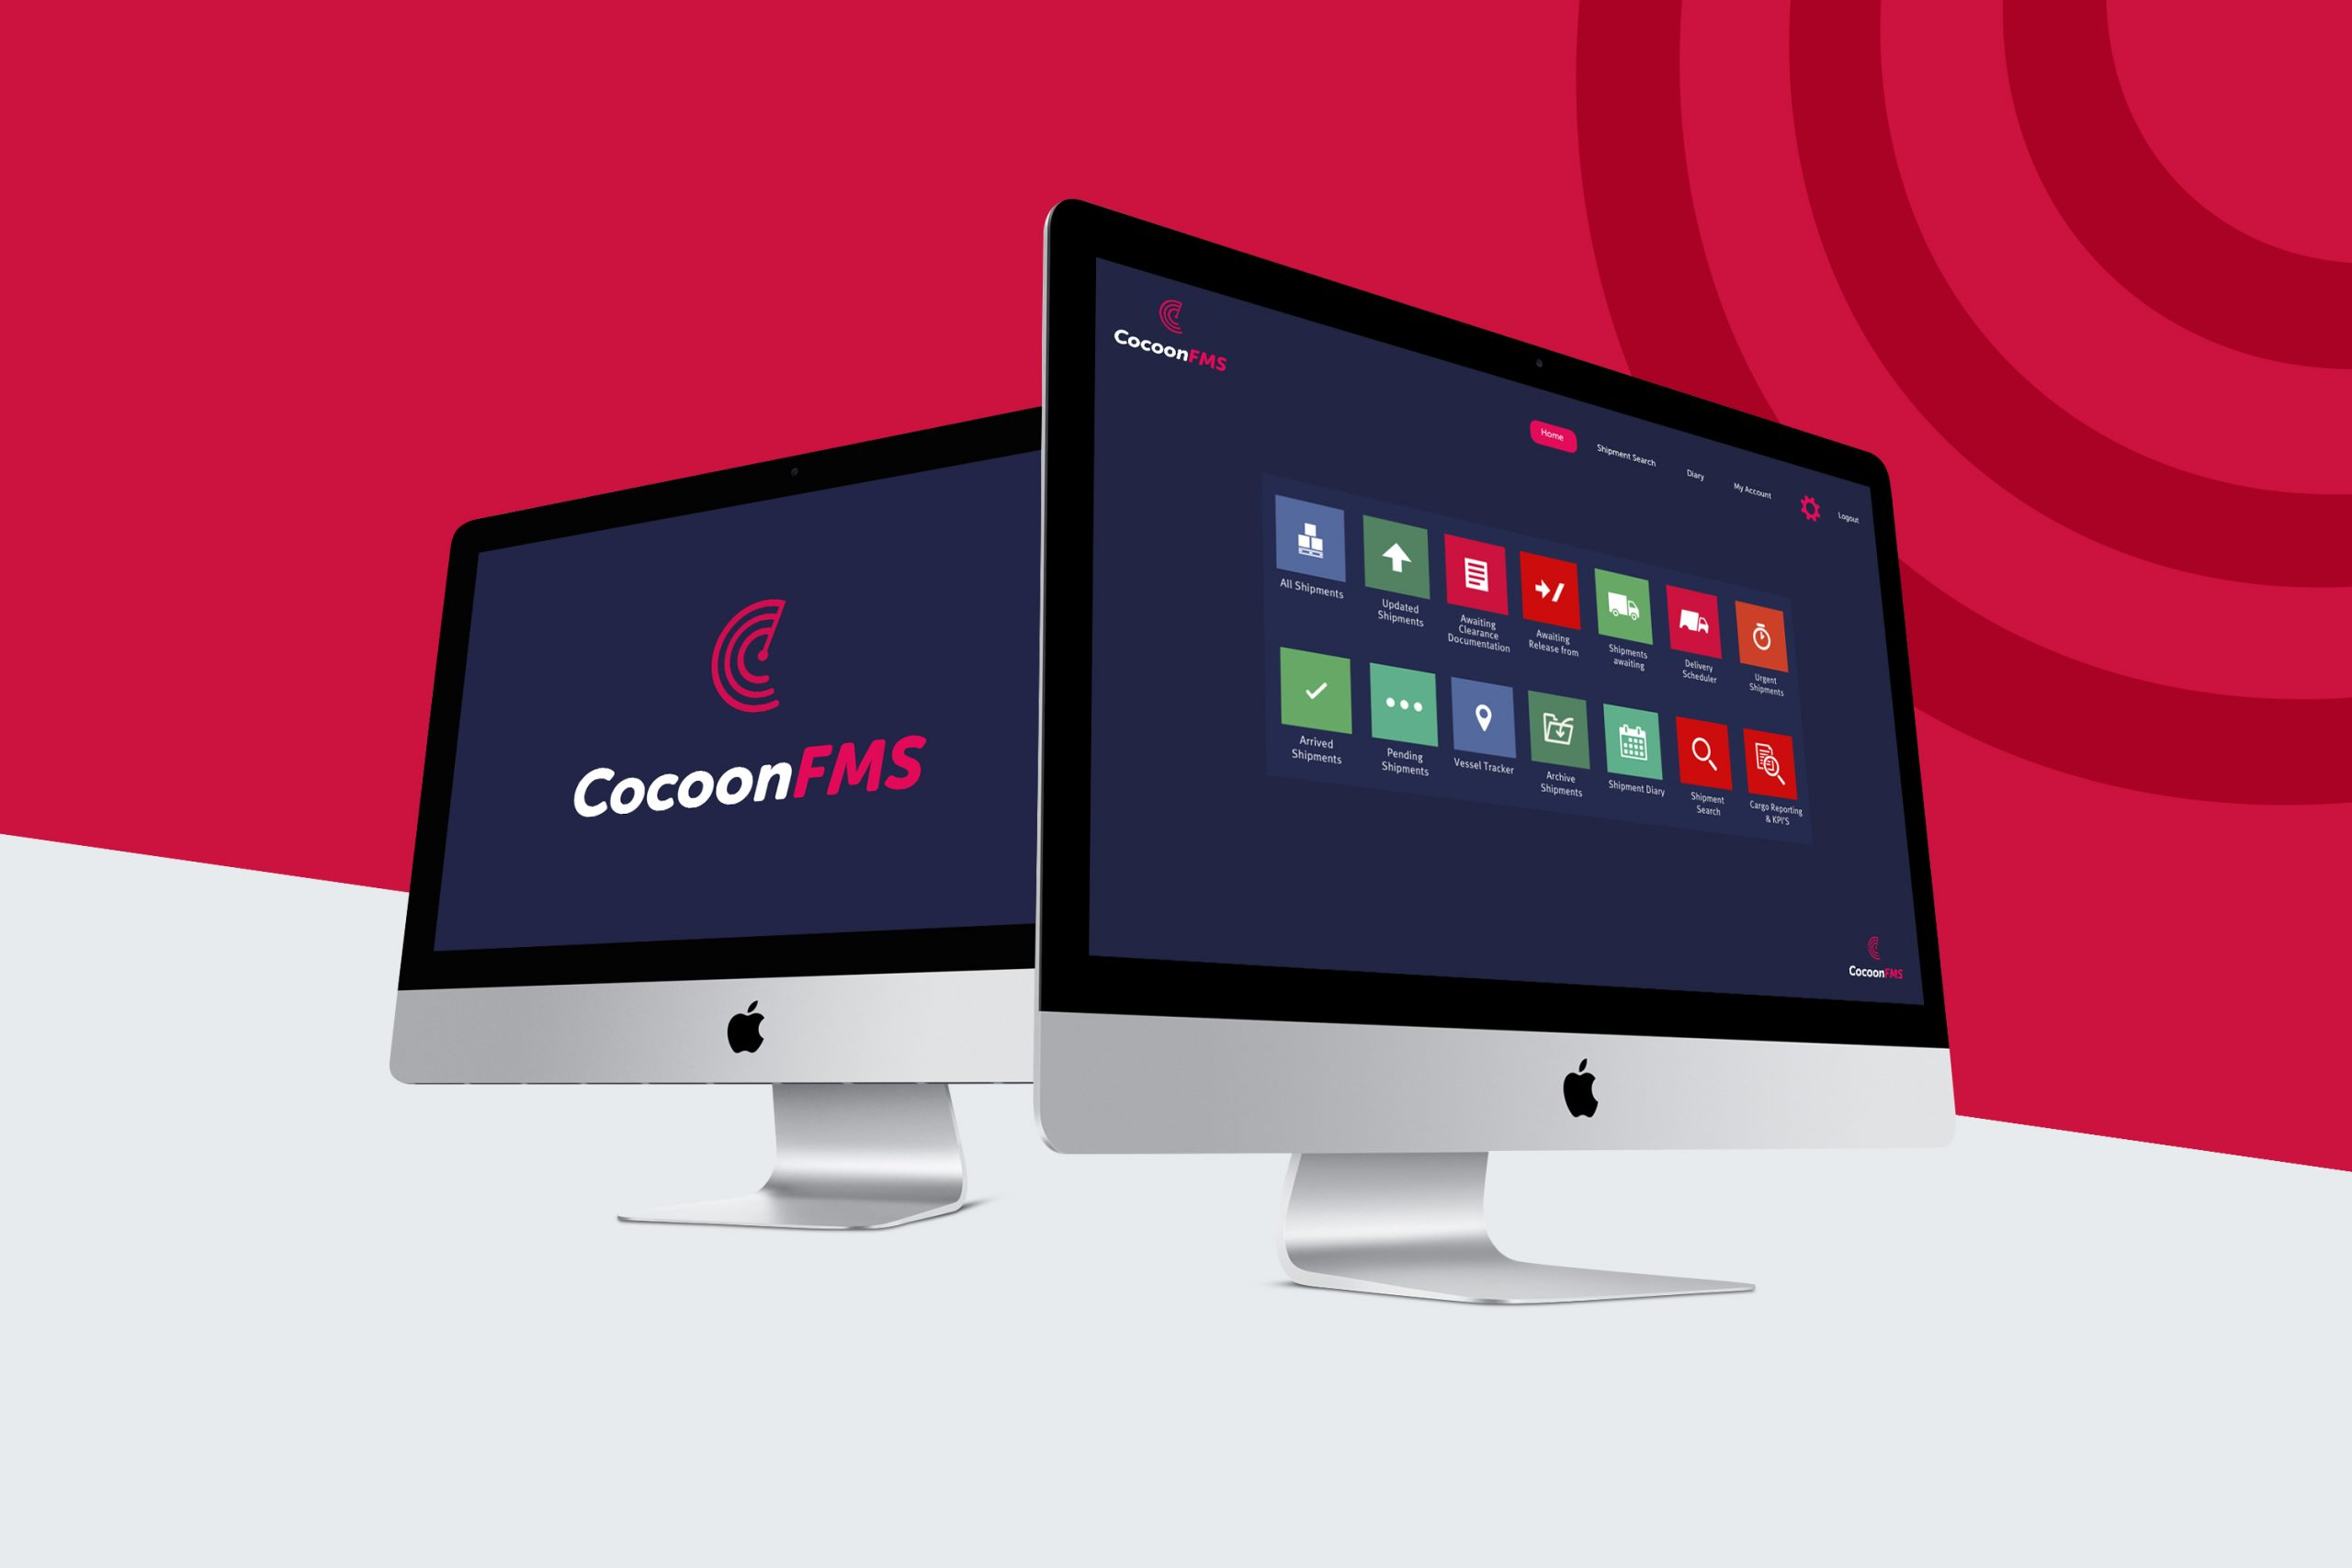 New UK based Logistics software company CocoonFMS announces launch